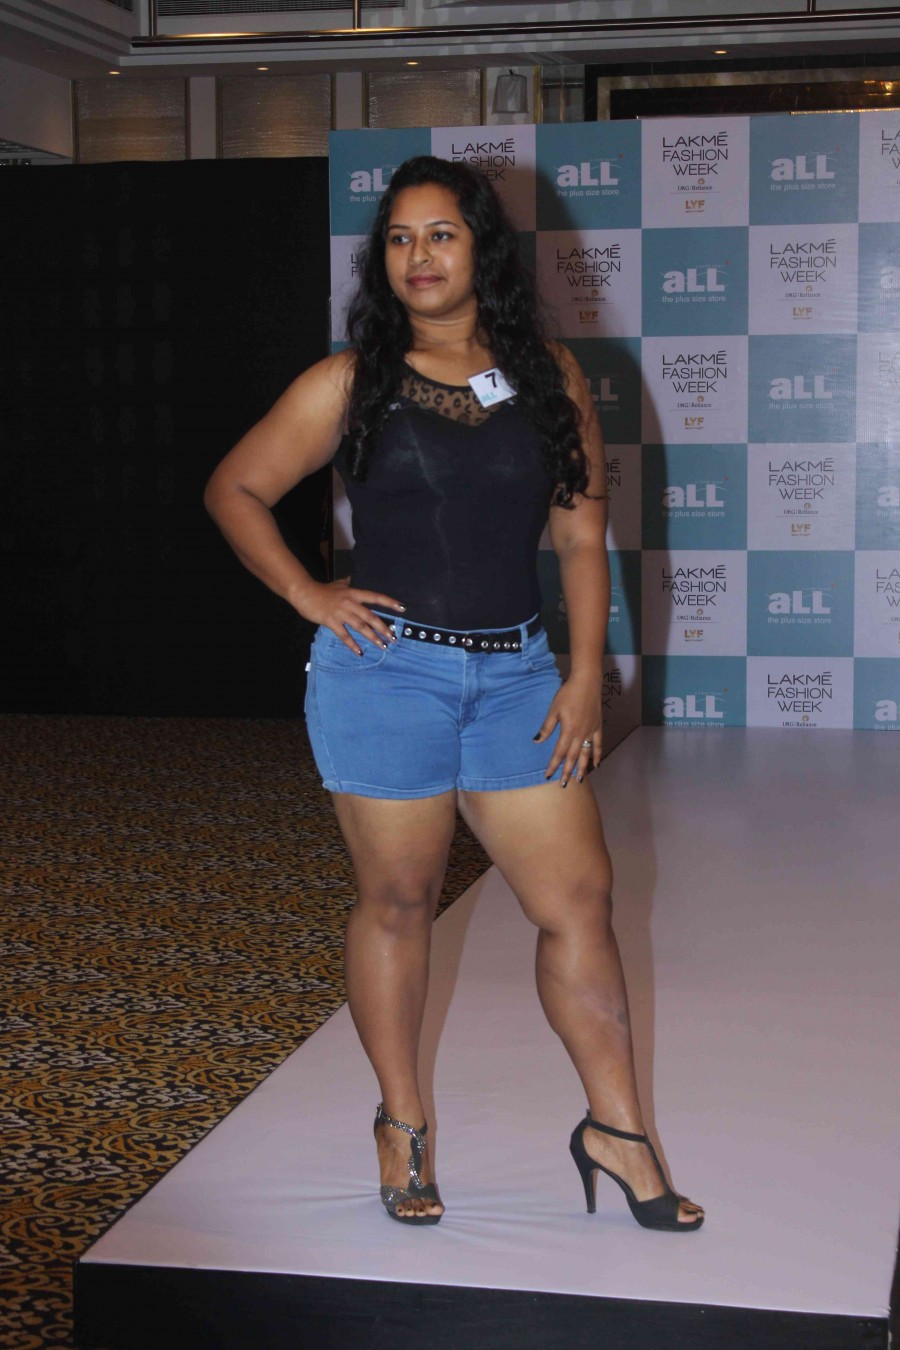 Lakme Fashion Week 2016,Lakme Fashion Week,auditions of Lakme Fashion Week,model auditions,Plus size model auditions,Lakme Fashion Week pics,Lakme Fashion Week images,Lakme Fashion Week photos,Lakme Fashion Week stills,Lakme Fashion Week pictures